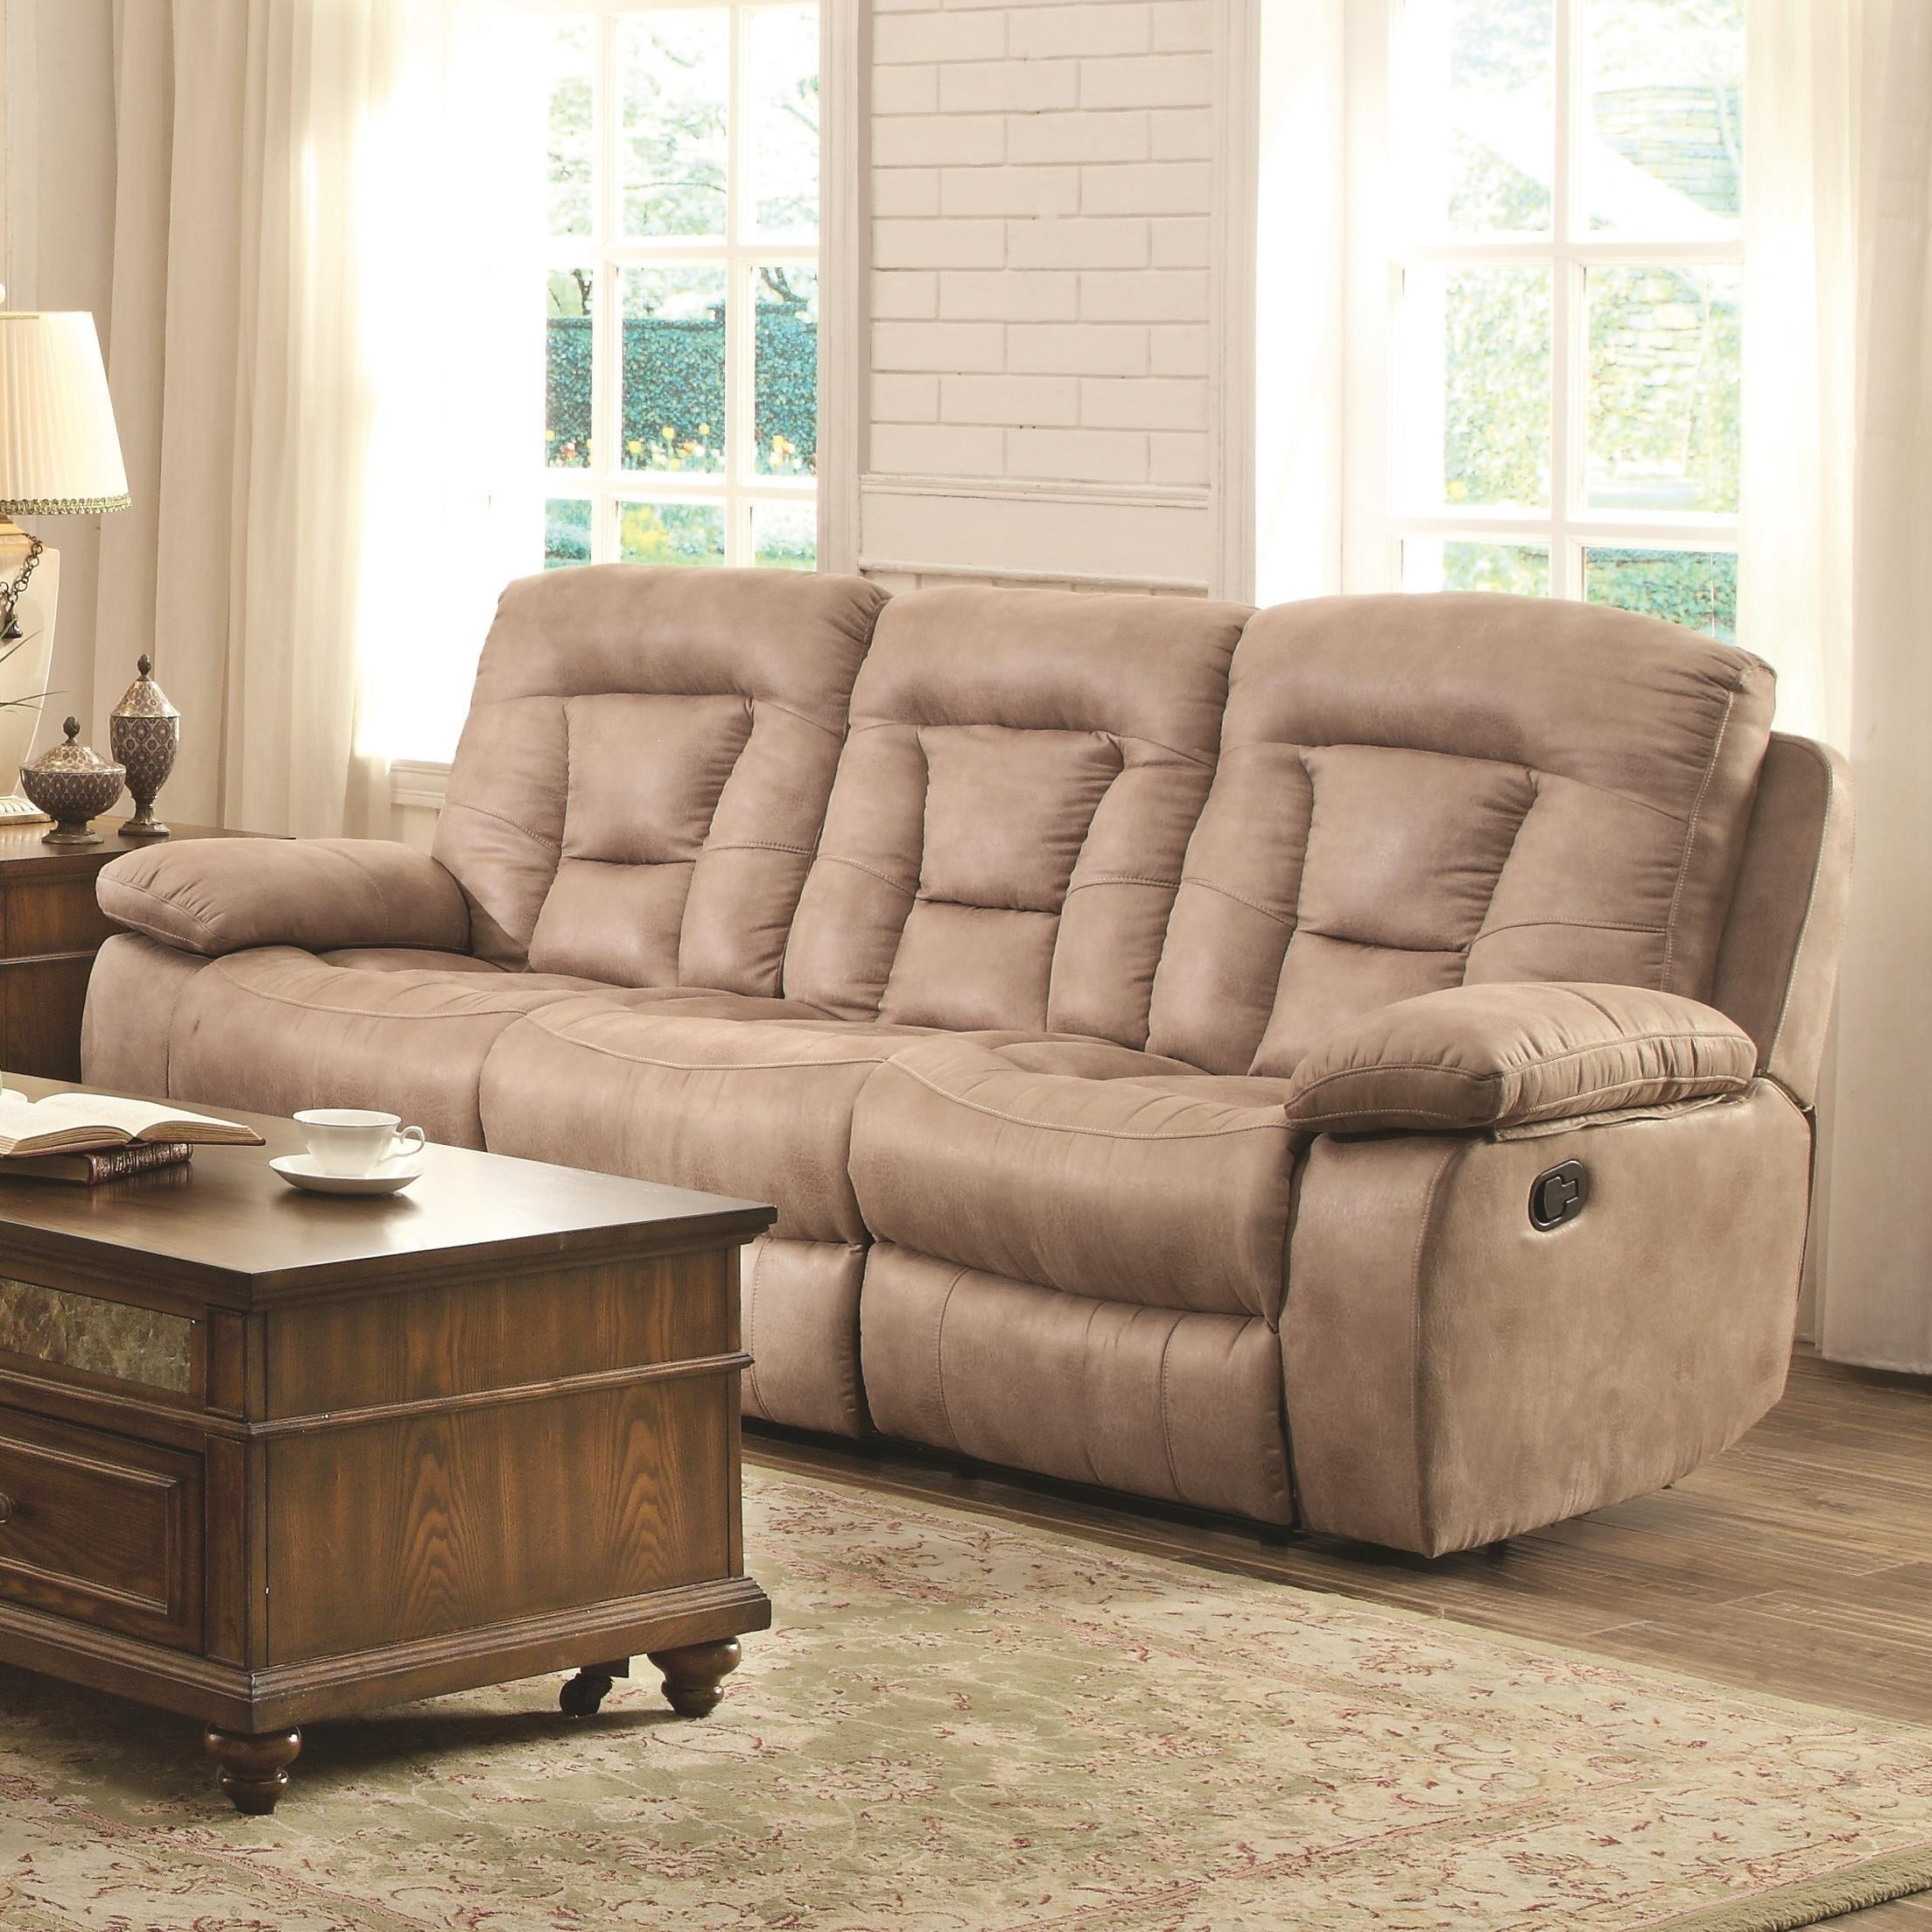 Coaster 601861 Evensky Reclining Sofa With Bone Performance Upholstery With Regard To Coasters Sofas (View 10 of 20)